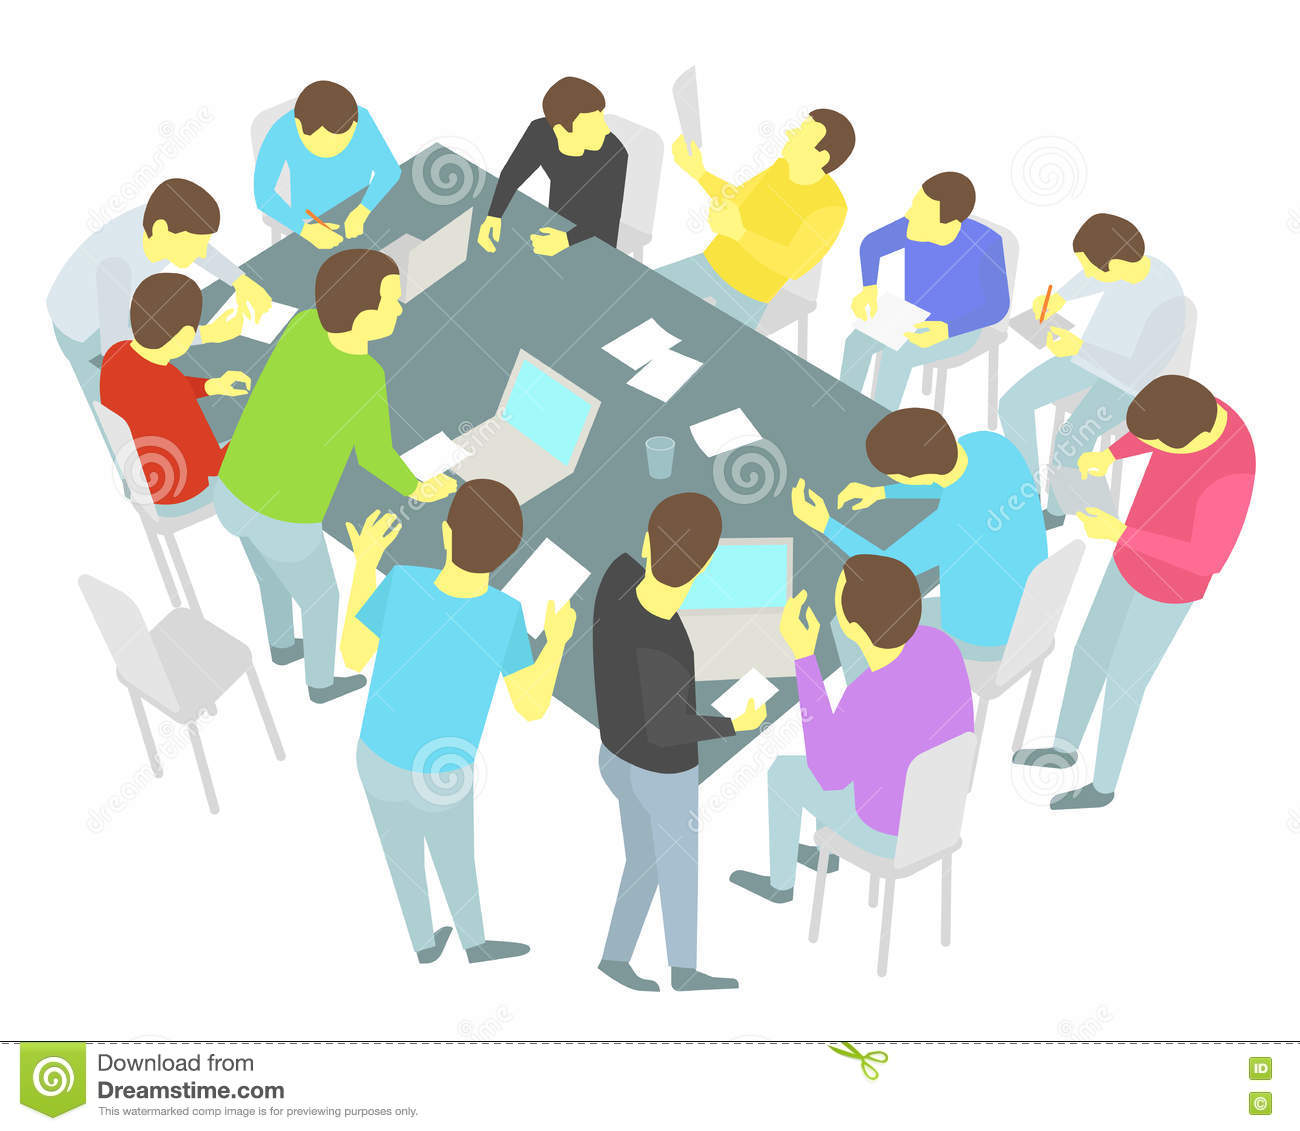 Round table meeting icon -  Round Table Discussion Icon Business Collaboration Conference Discussion Group Meeting People Download